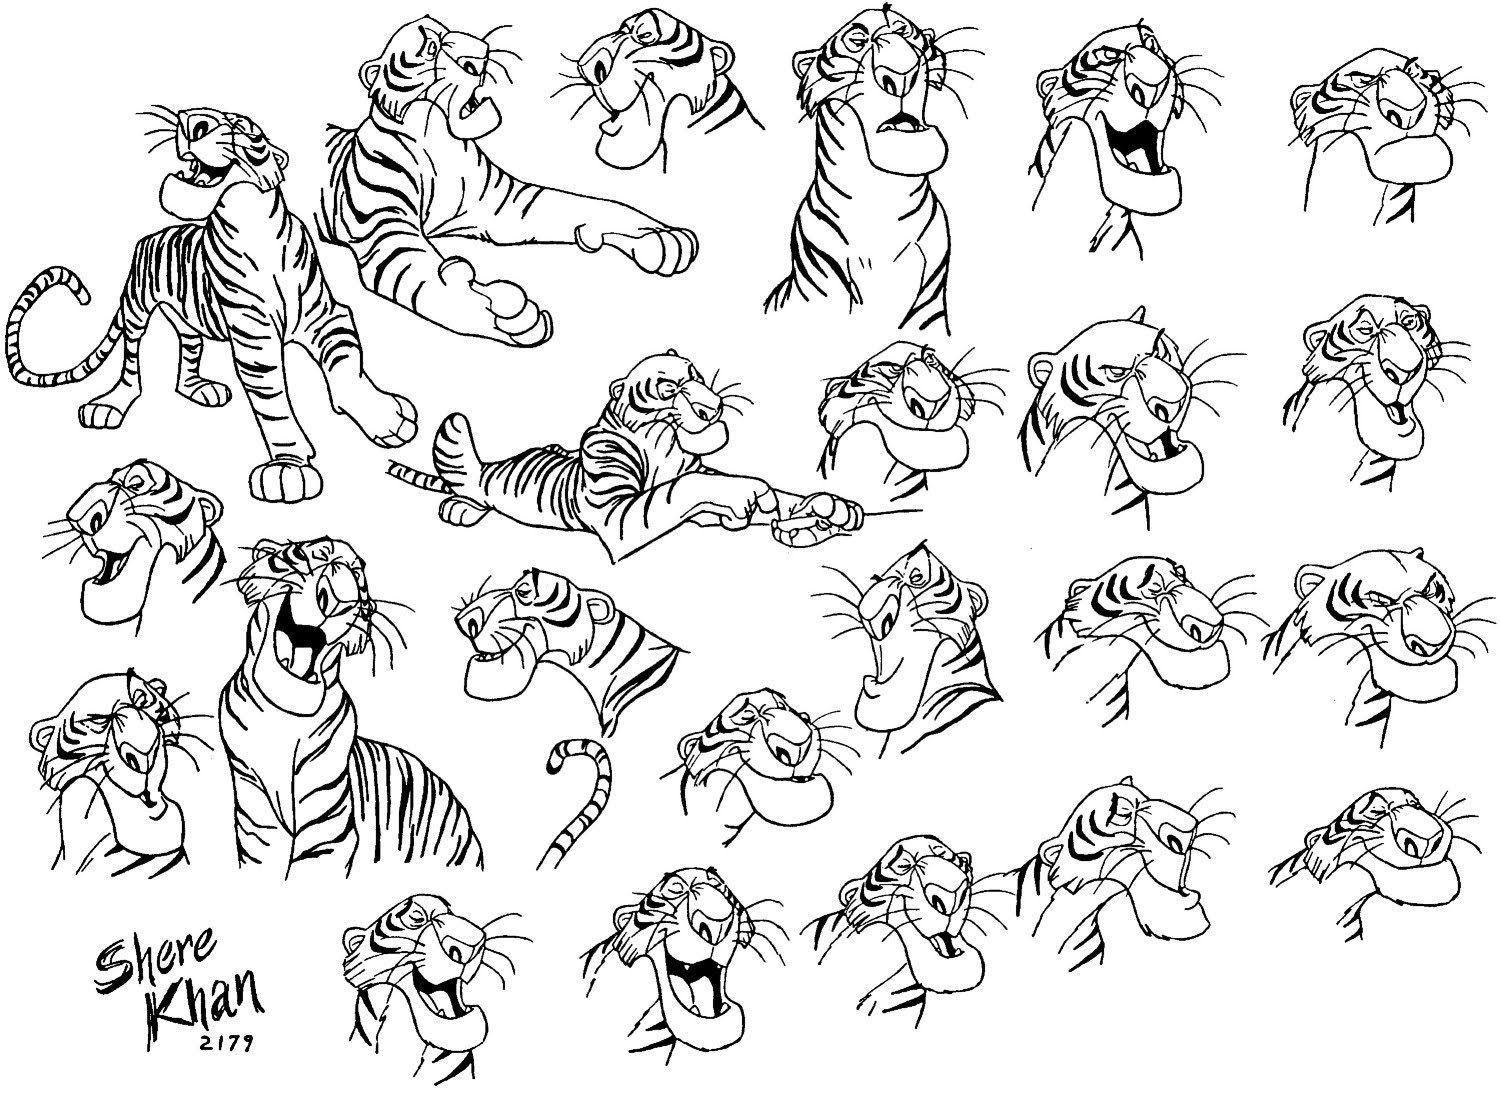 Character Design Chart : Disney character design sheet google search model